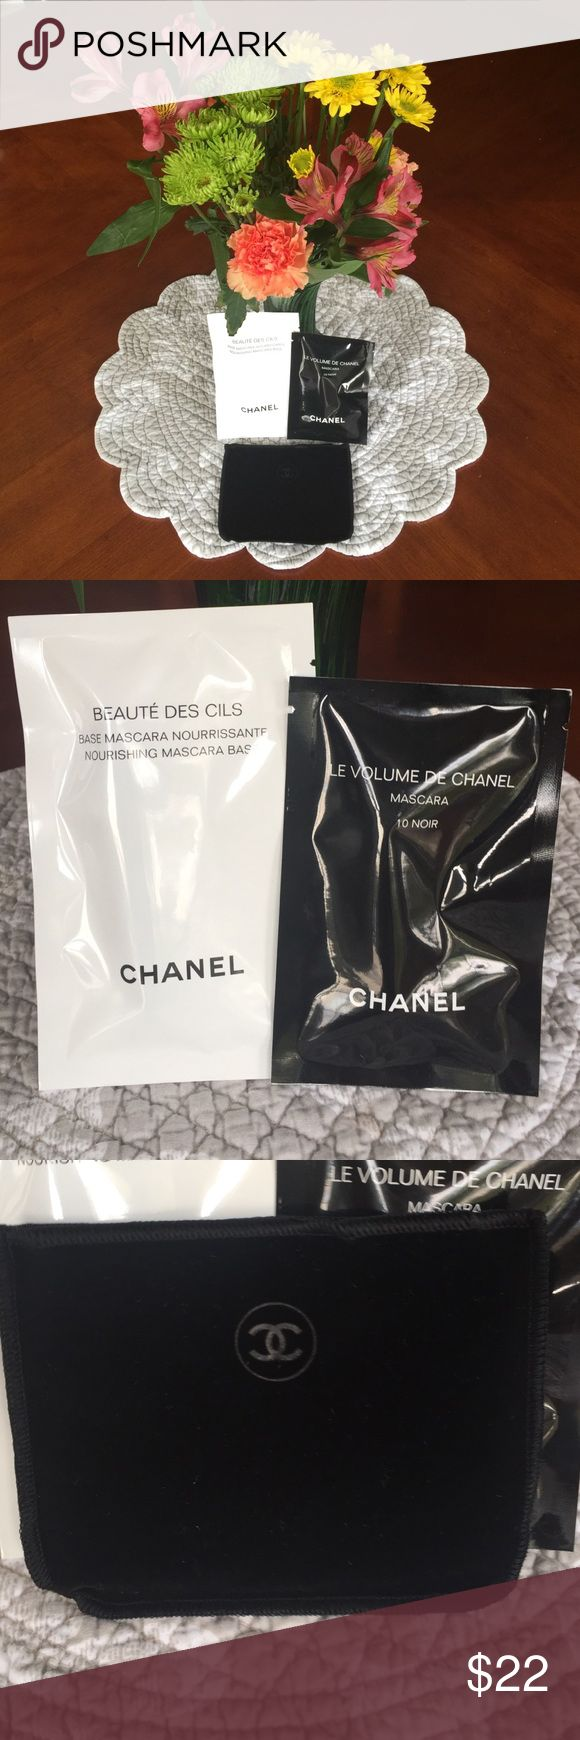 """💋❤️Chanel Mascara, Mascara Base & Travel Pouch💋 This high precision mascara comes in a 3"""" travel sz tube.  It achieves instant volume & intensely lush color in a single stroke.  The Chanel Mascara Base is the All-Important 1st step in strengthening lashes. Can also be worn as a """"mask"""" to strengthen lashes at night!  This travel sz tube is approximately 4"""".  I'm also including a velvet open ended travel pouch!  Enjoy! 🎁🍾👠💋Regular sz retail for $32 each CHANEL Makeup Mascara"""